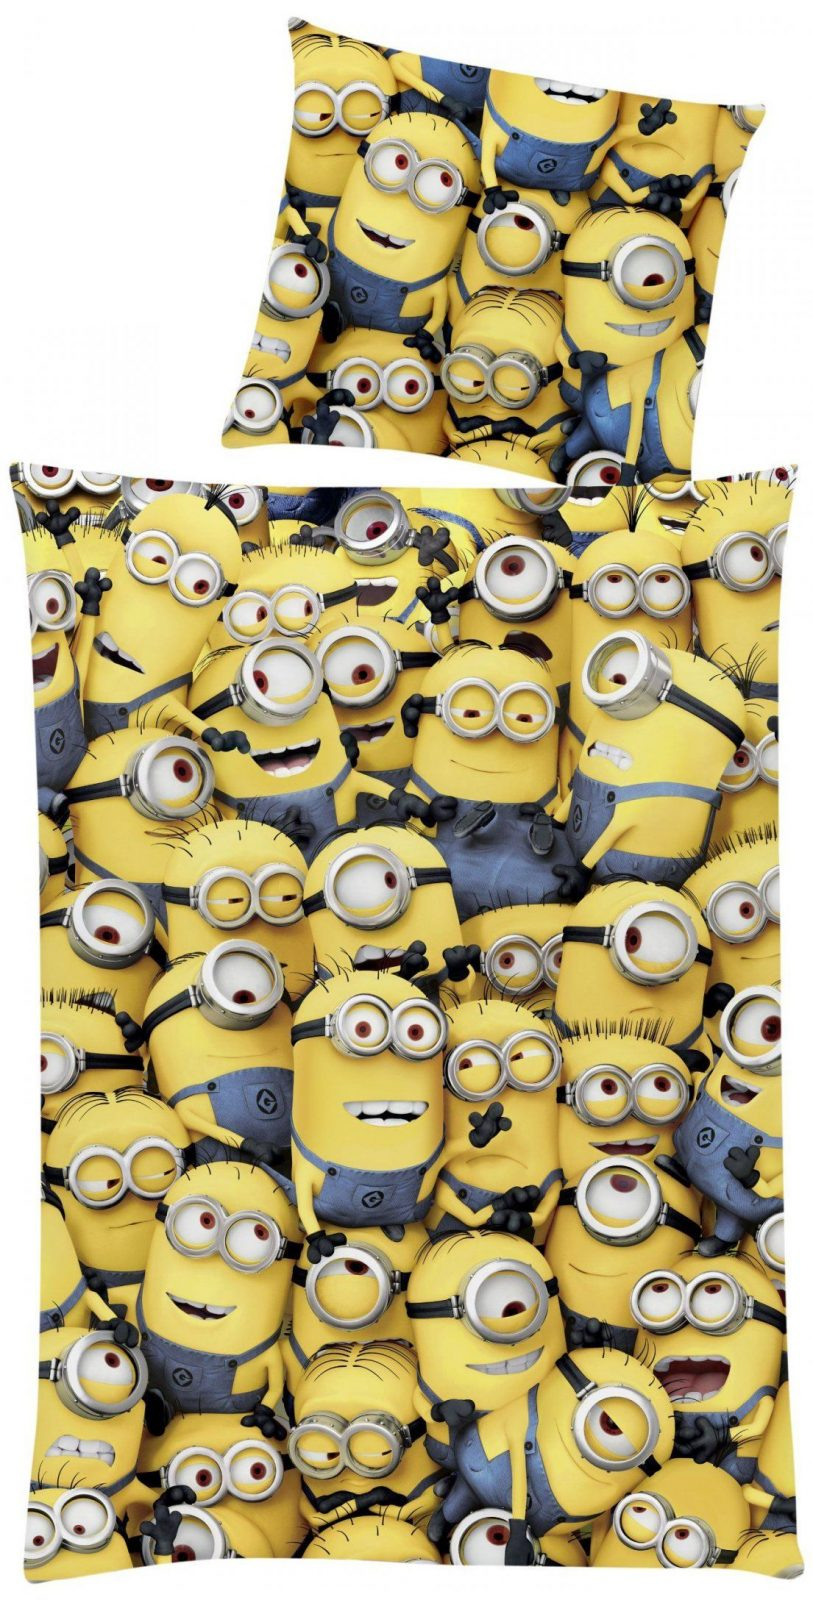 "Global Labels G 95 600 Mi1 180 Minions ""crowd"" Bettwäsche Renforce von Minion Bettwäsche Real Bild"